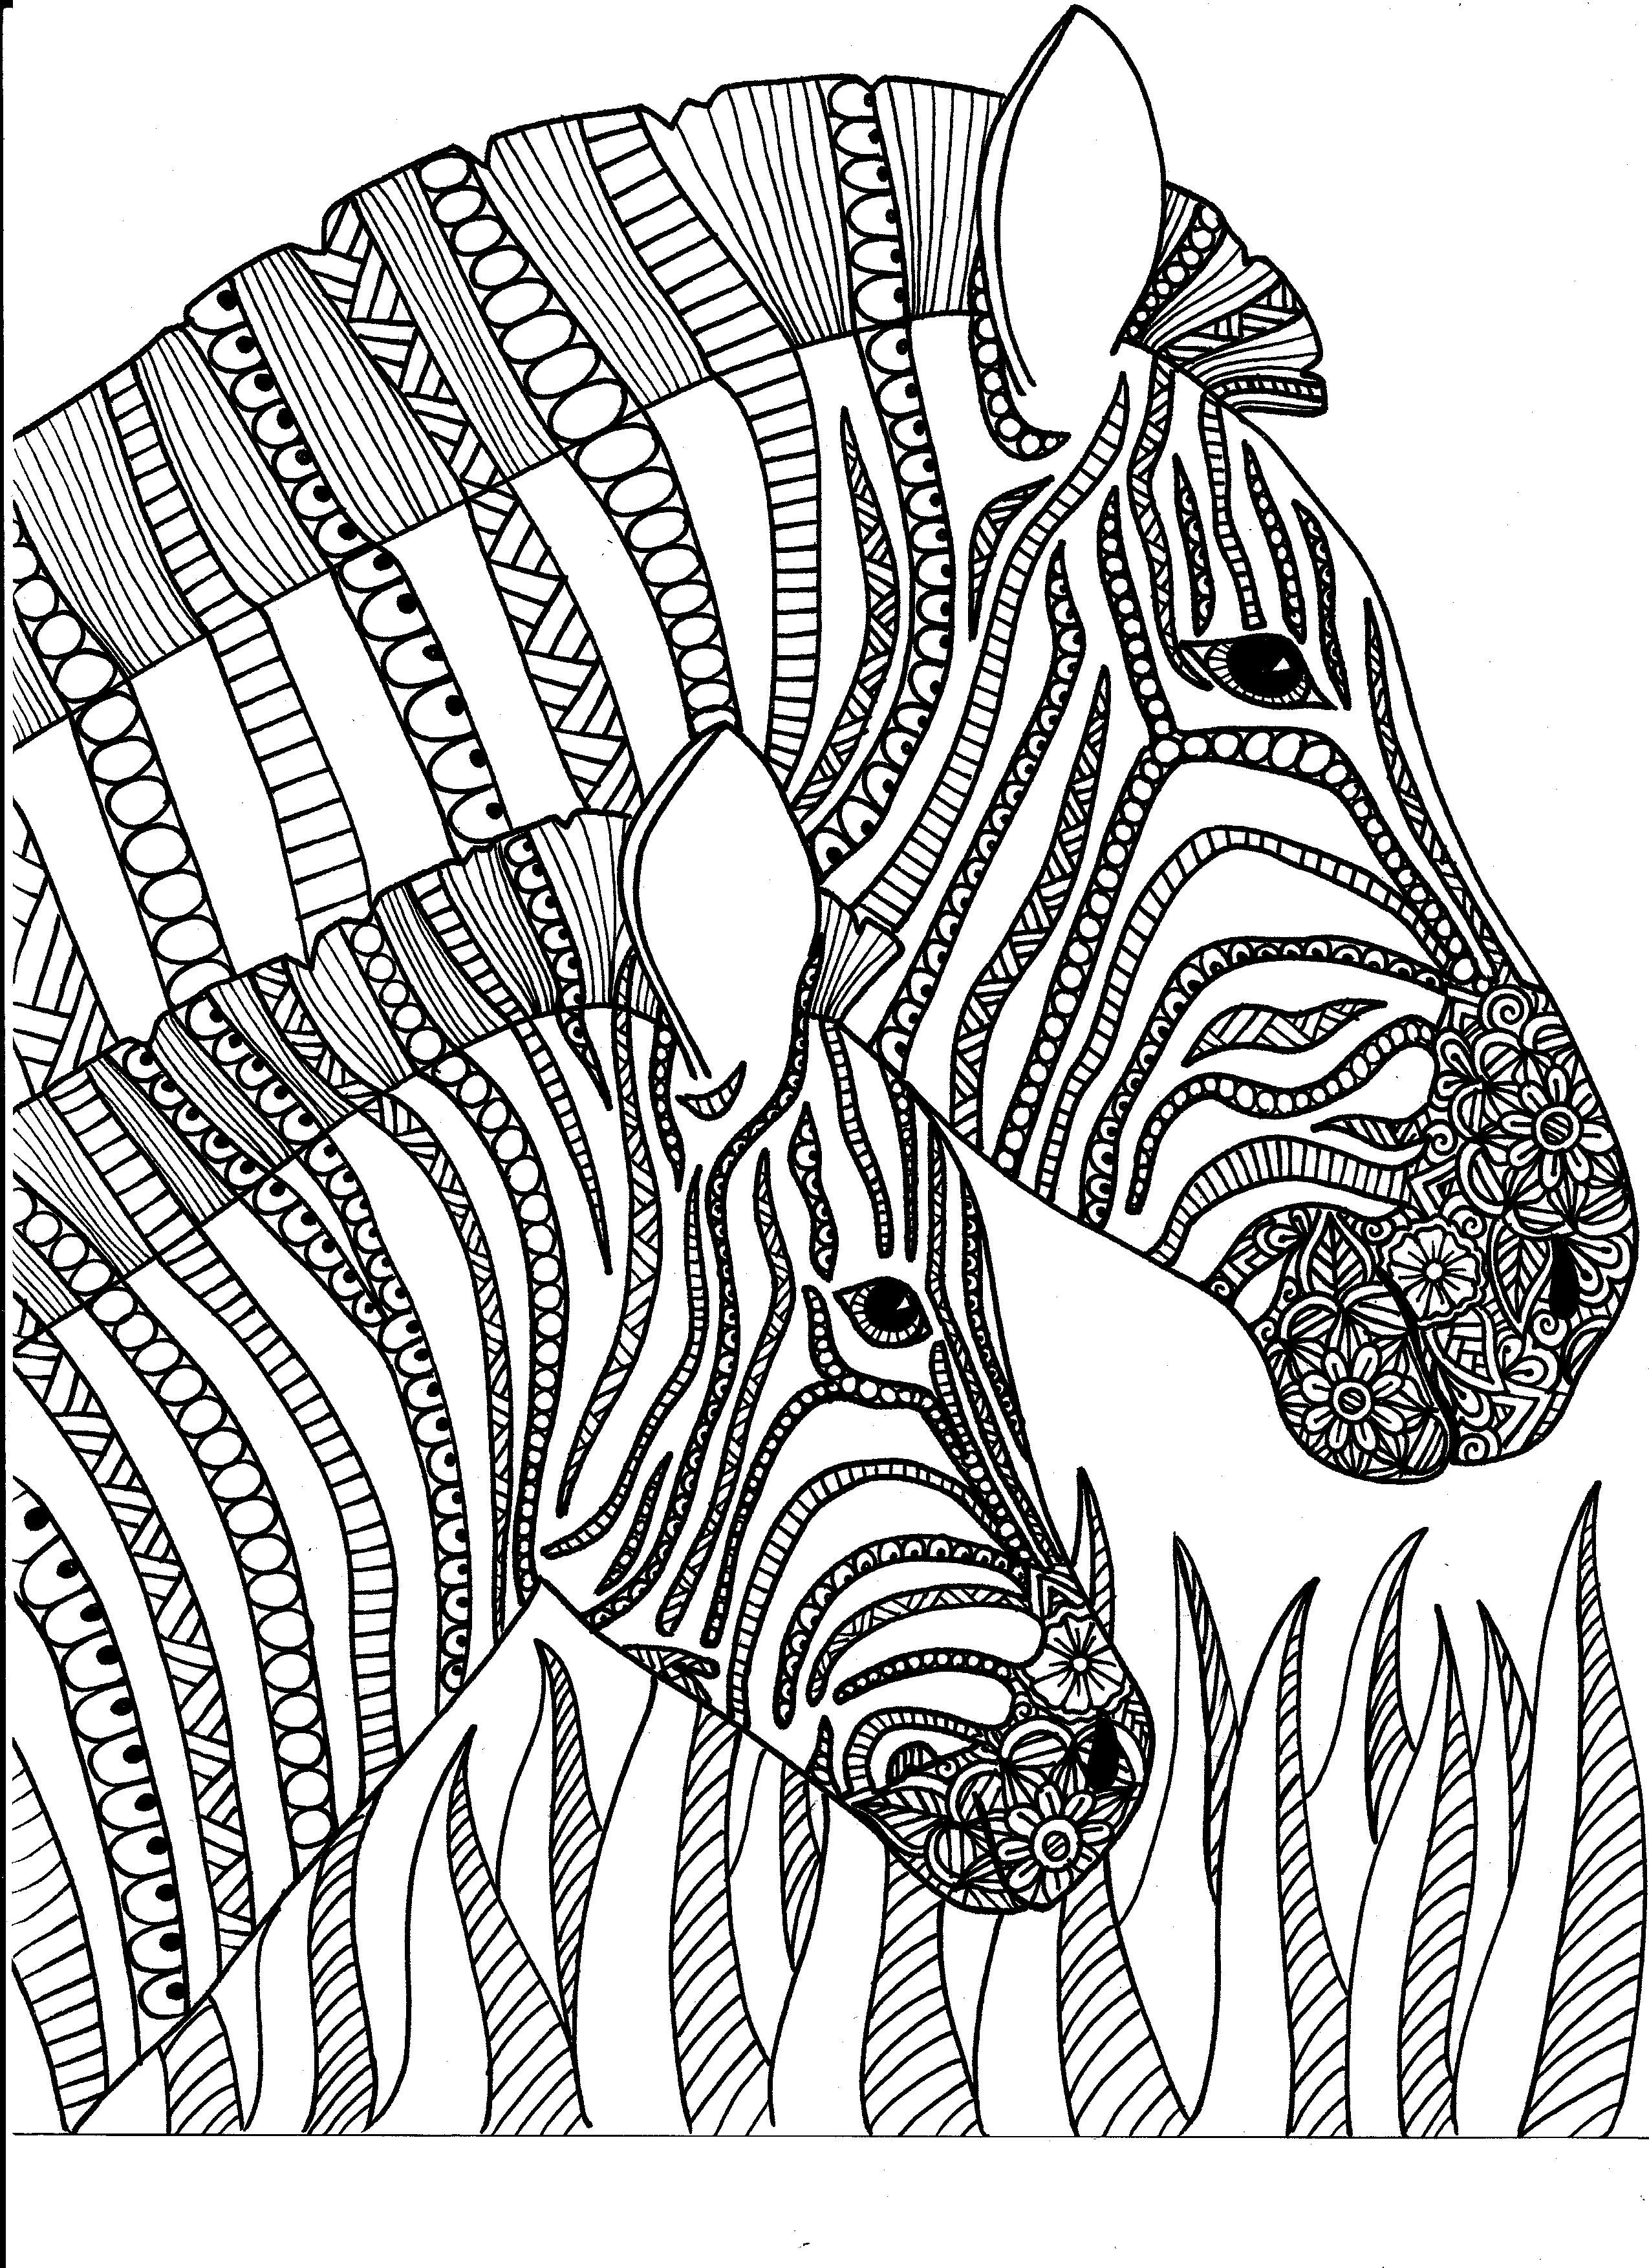 animal kingdom coloring pages | #Inkspirations Animal Kingdom #Coloring | African animals ...